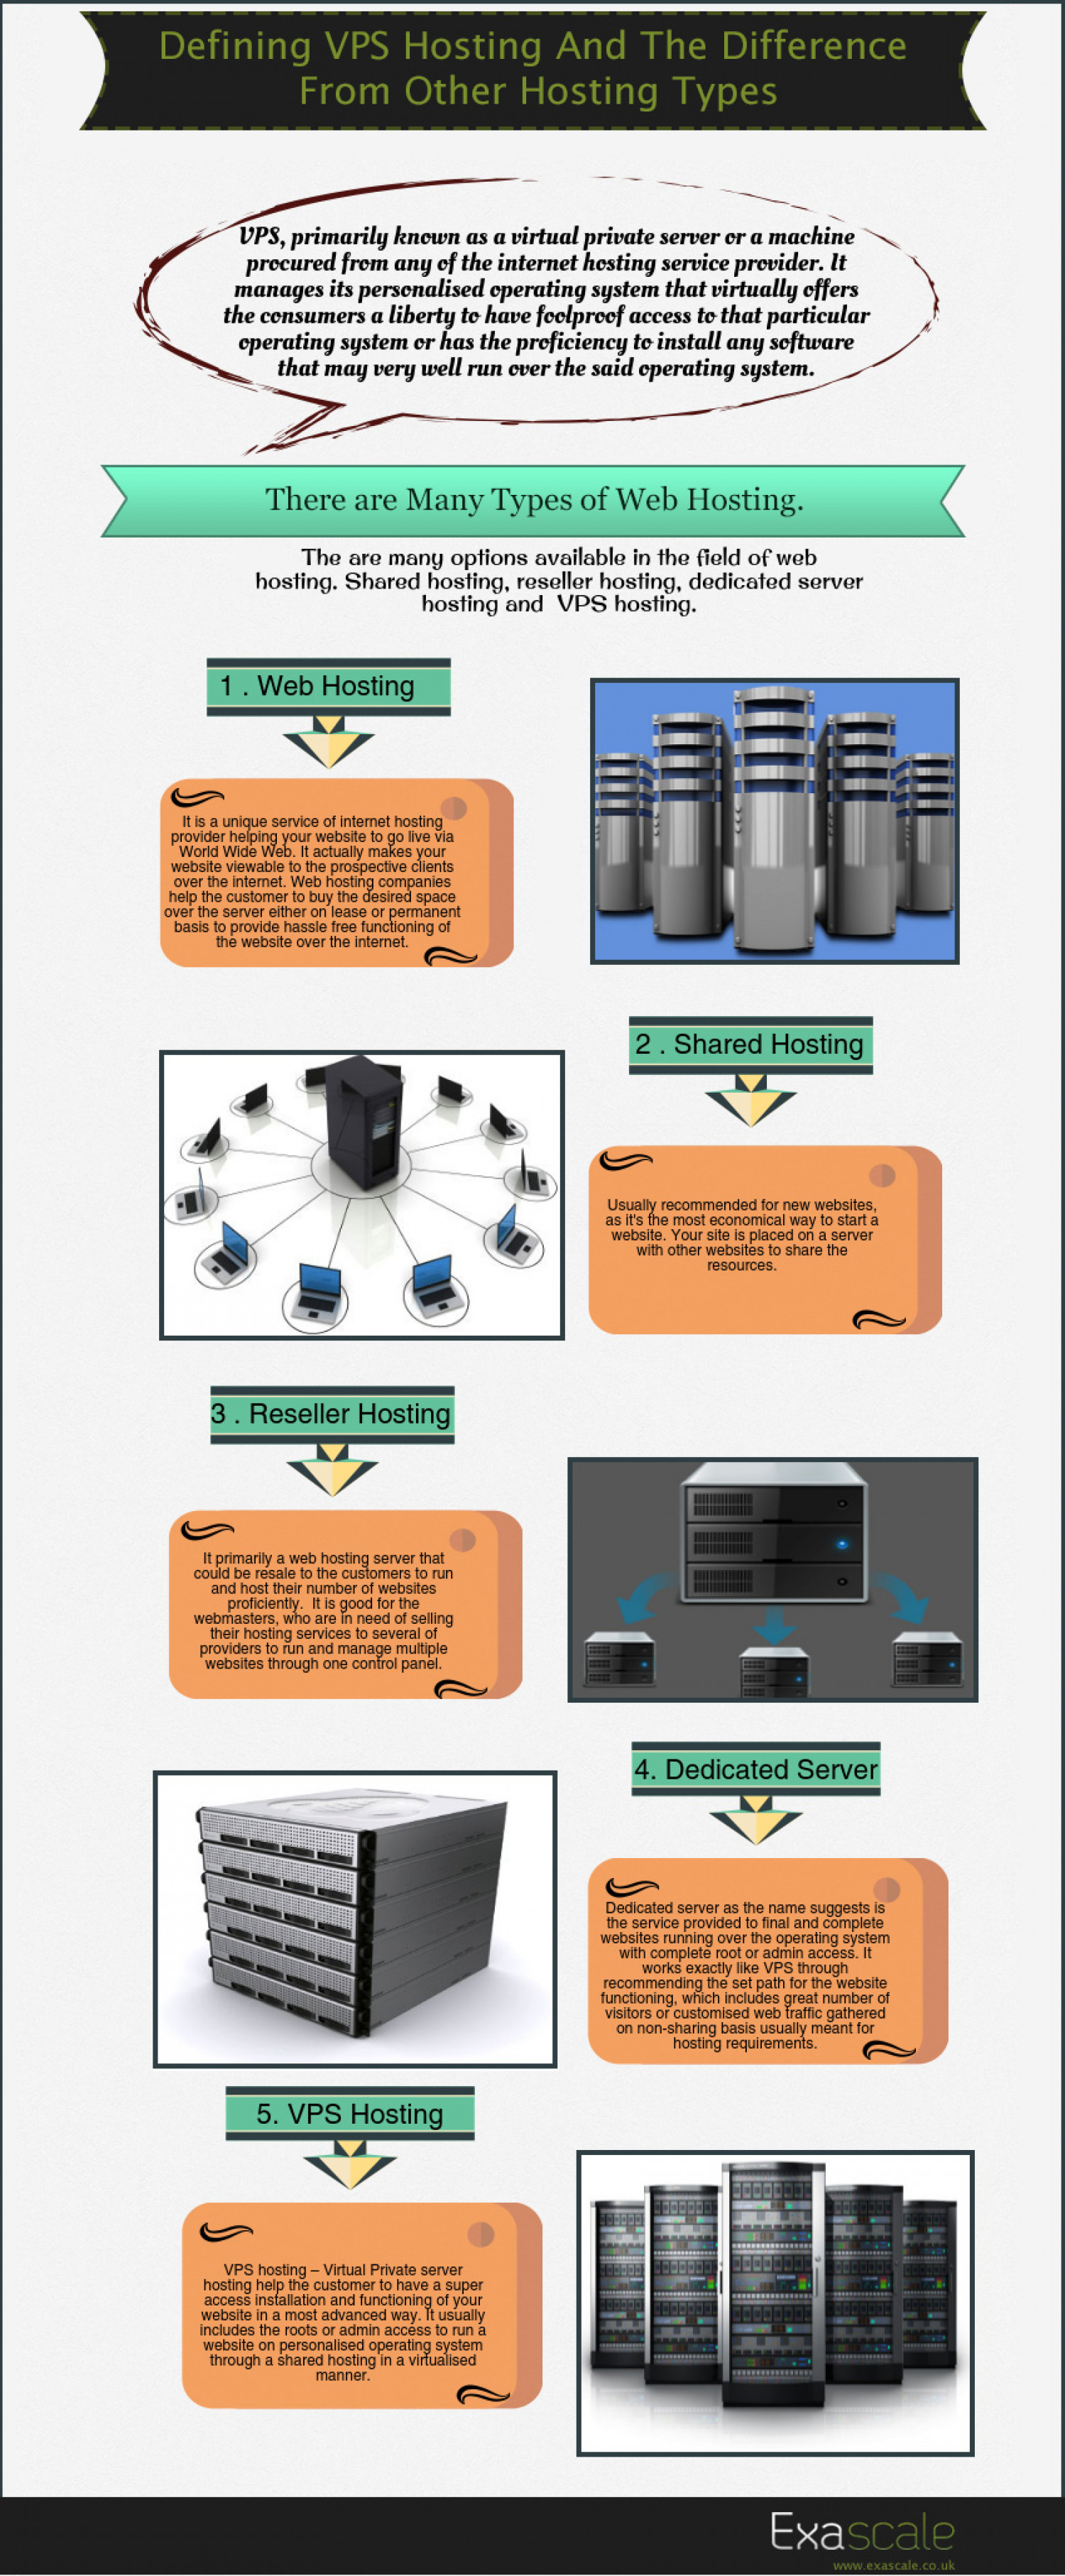 Defining VPS Hosting and The Difference From Other Hosting Types Infographic